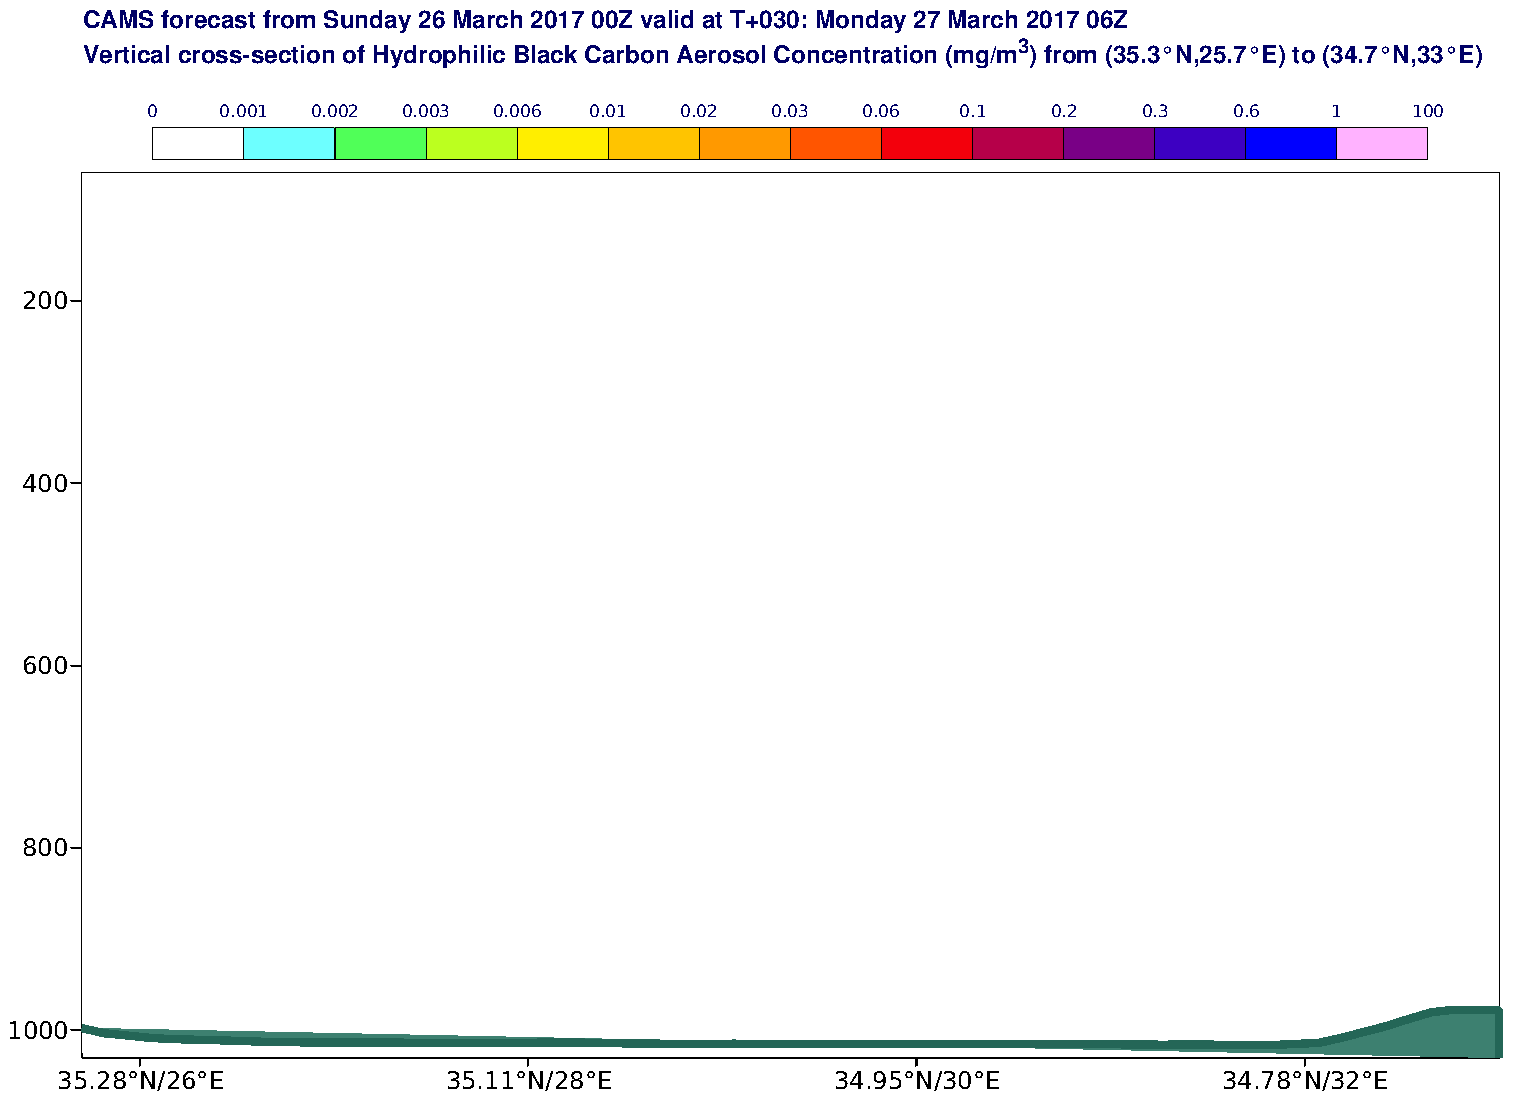 Vertical cross-section of Hydrophilic Black Carbon Aerosol Concentration (mg/m3) valid at T30 - 2017-03-27 06:00